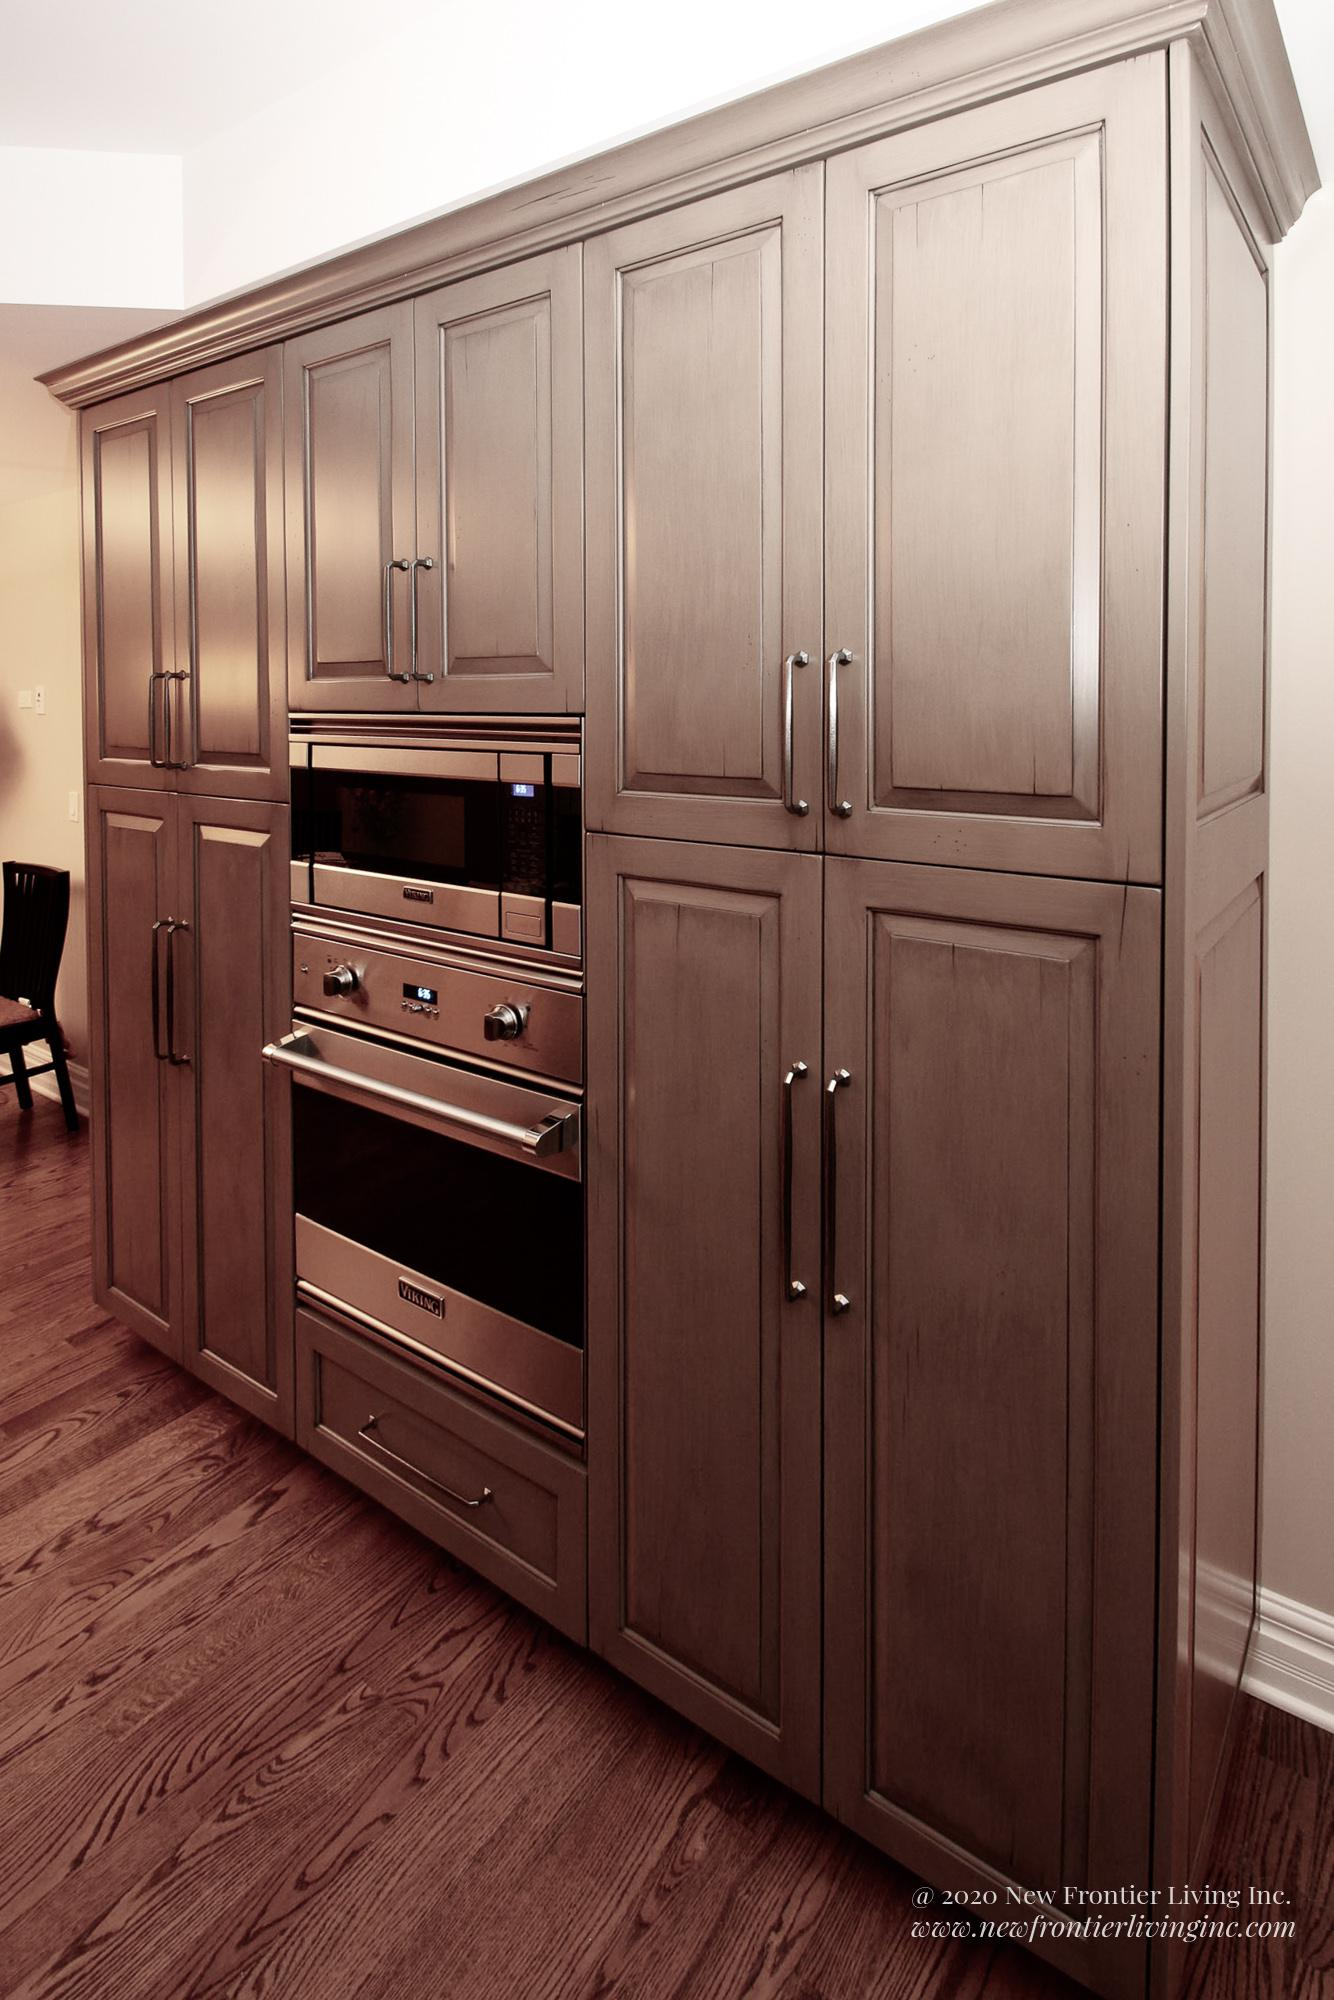 Custom light brown kitchen large storage cabinets and microwave and oven